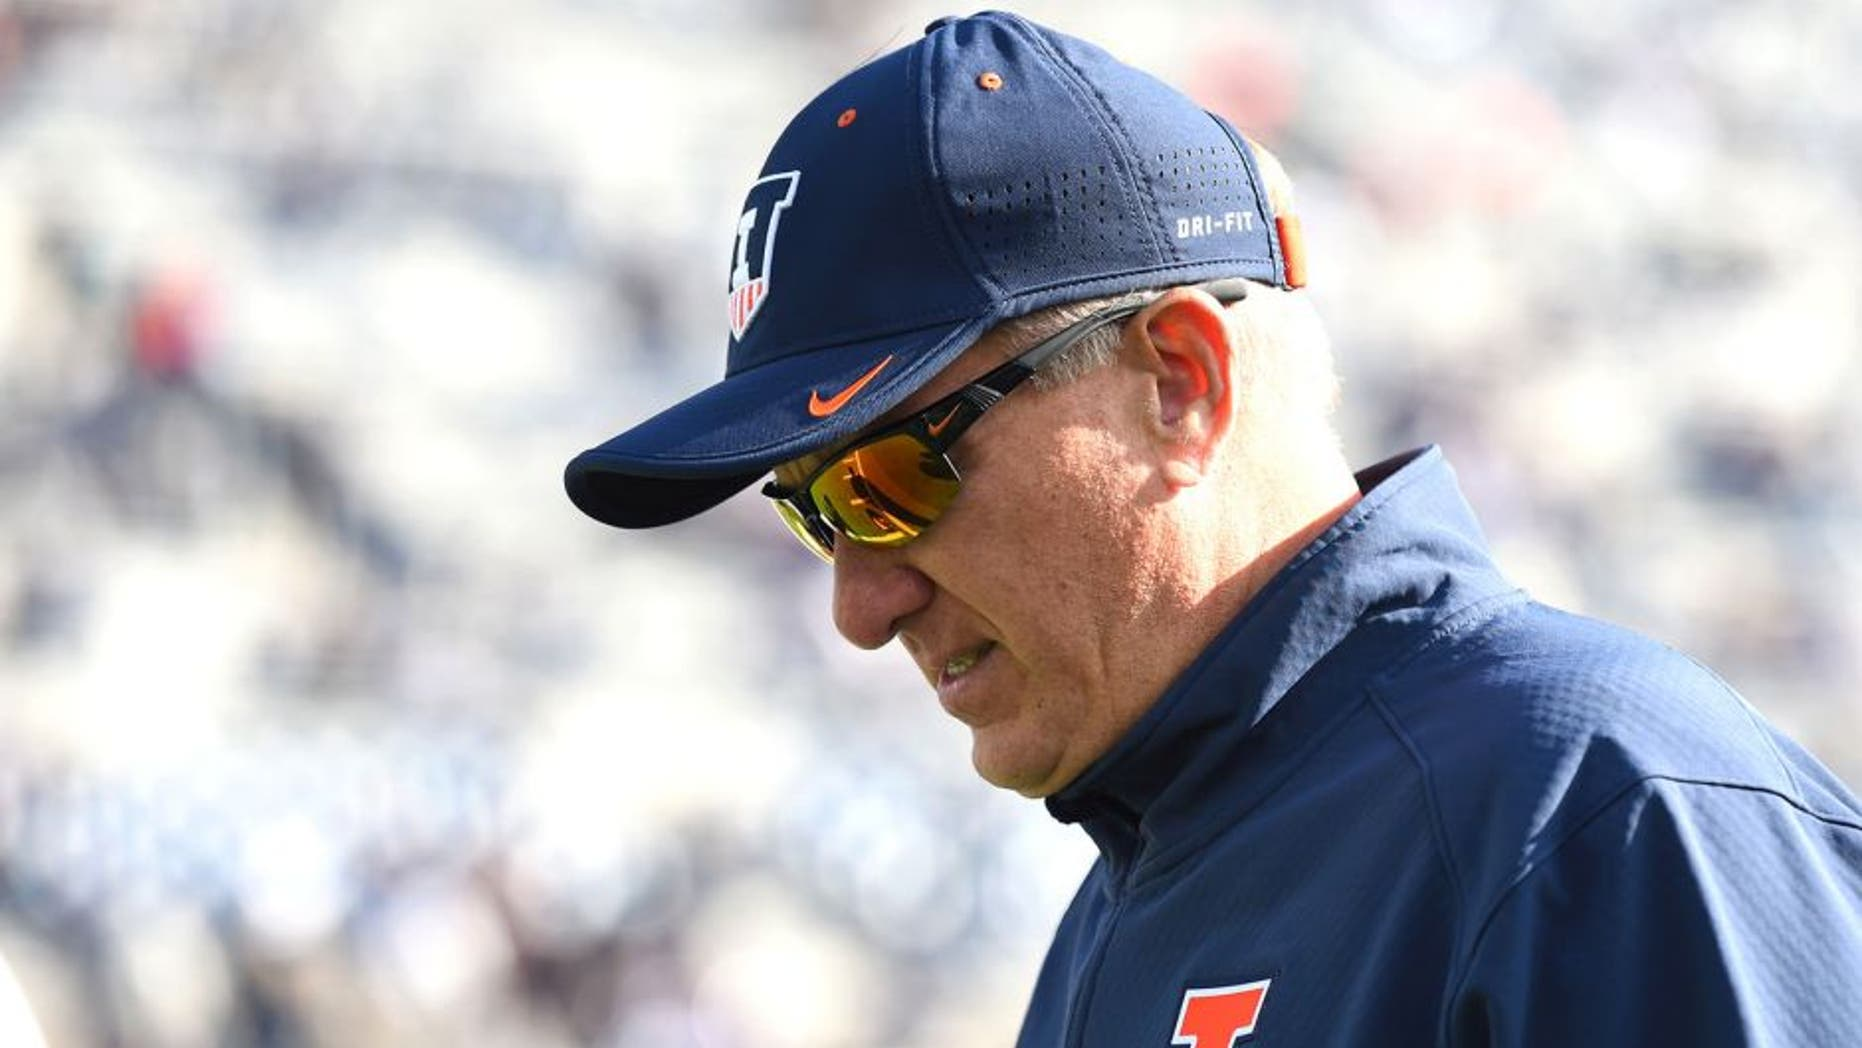 Oct 31, 2015; University Park, PA, USA; Illinois Fighting Illini head coach Bill Cubit walks on the field prior to the game against the Penn State Nittany Lions at Beaver Stadium. Mandatory Credit: Rich Barnes-USA TODAY Sports